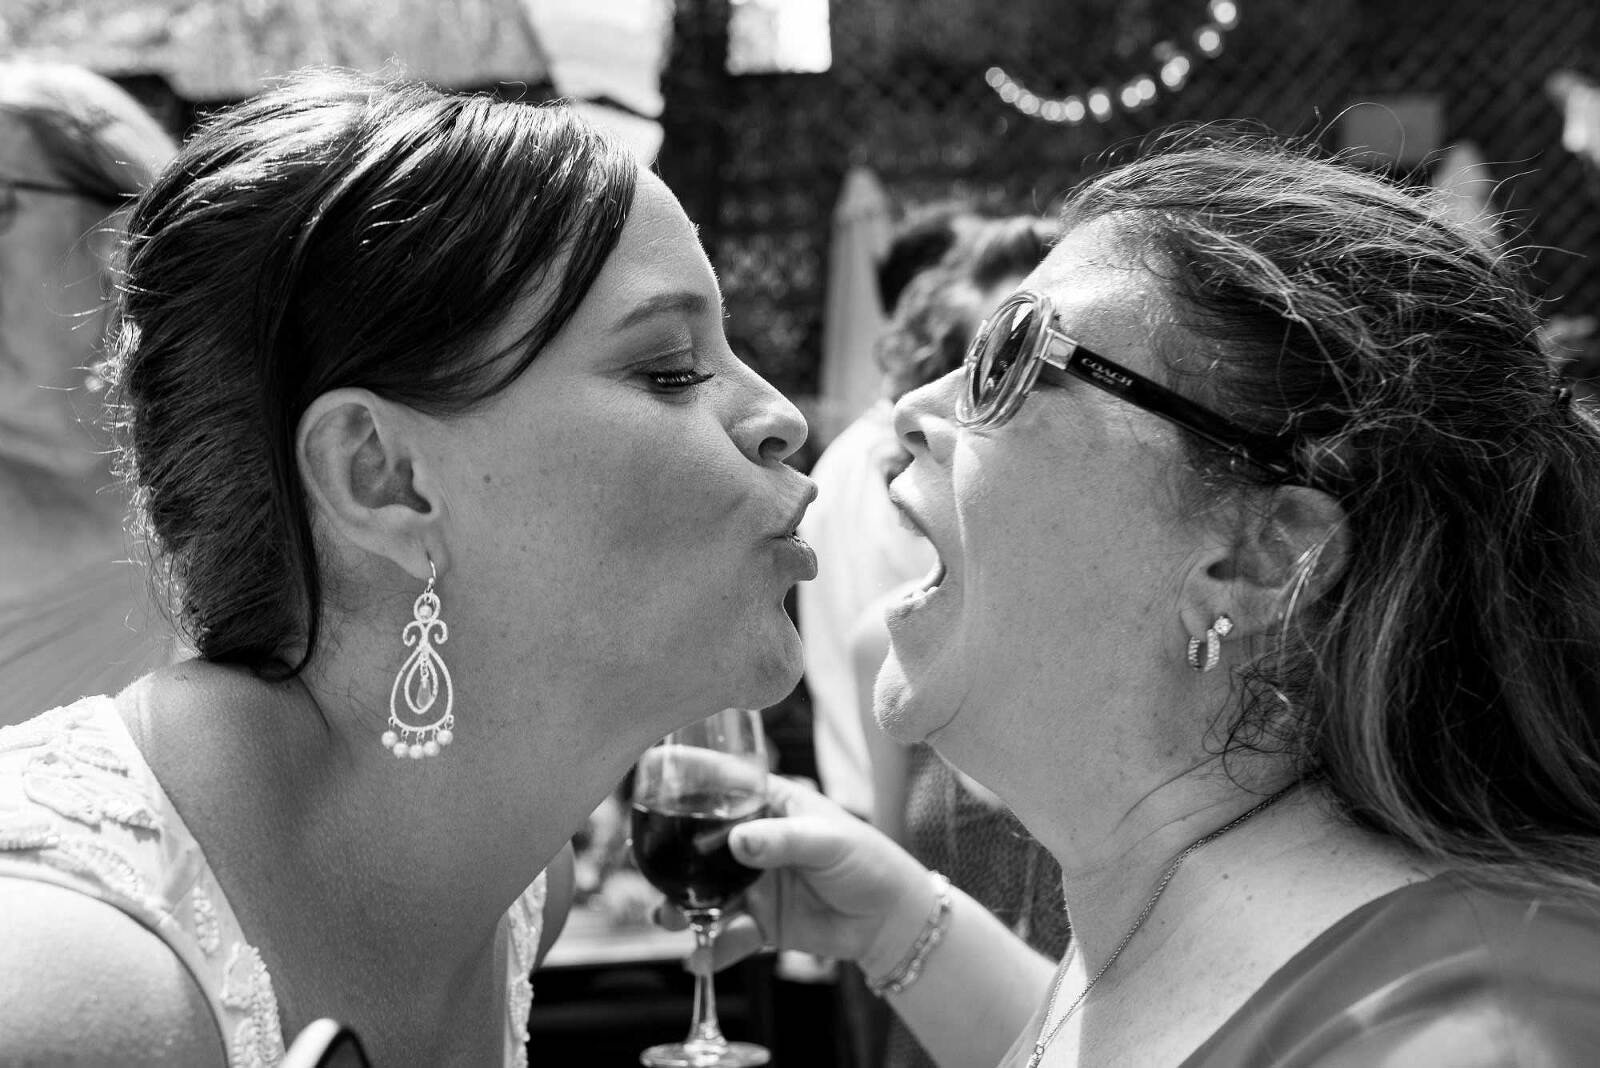 Bride and friend about to kiss at New York City wedding reception under Brooklyn bridge